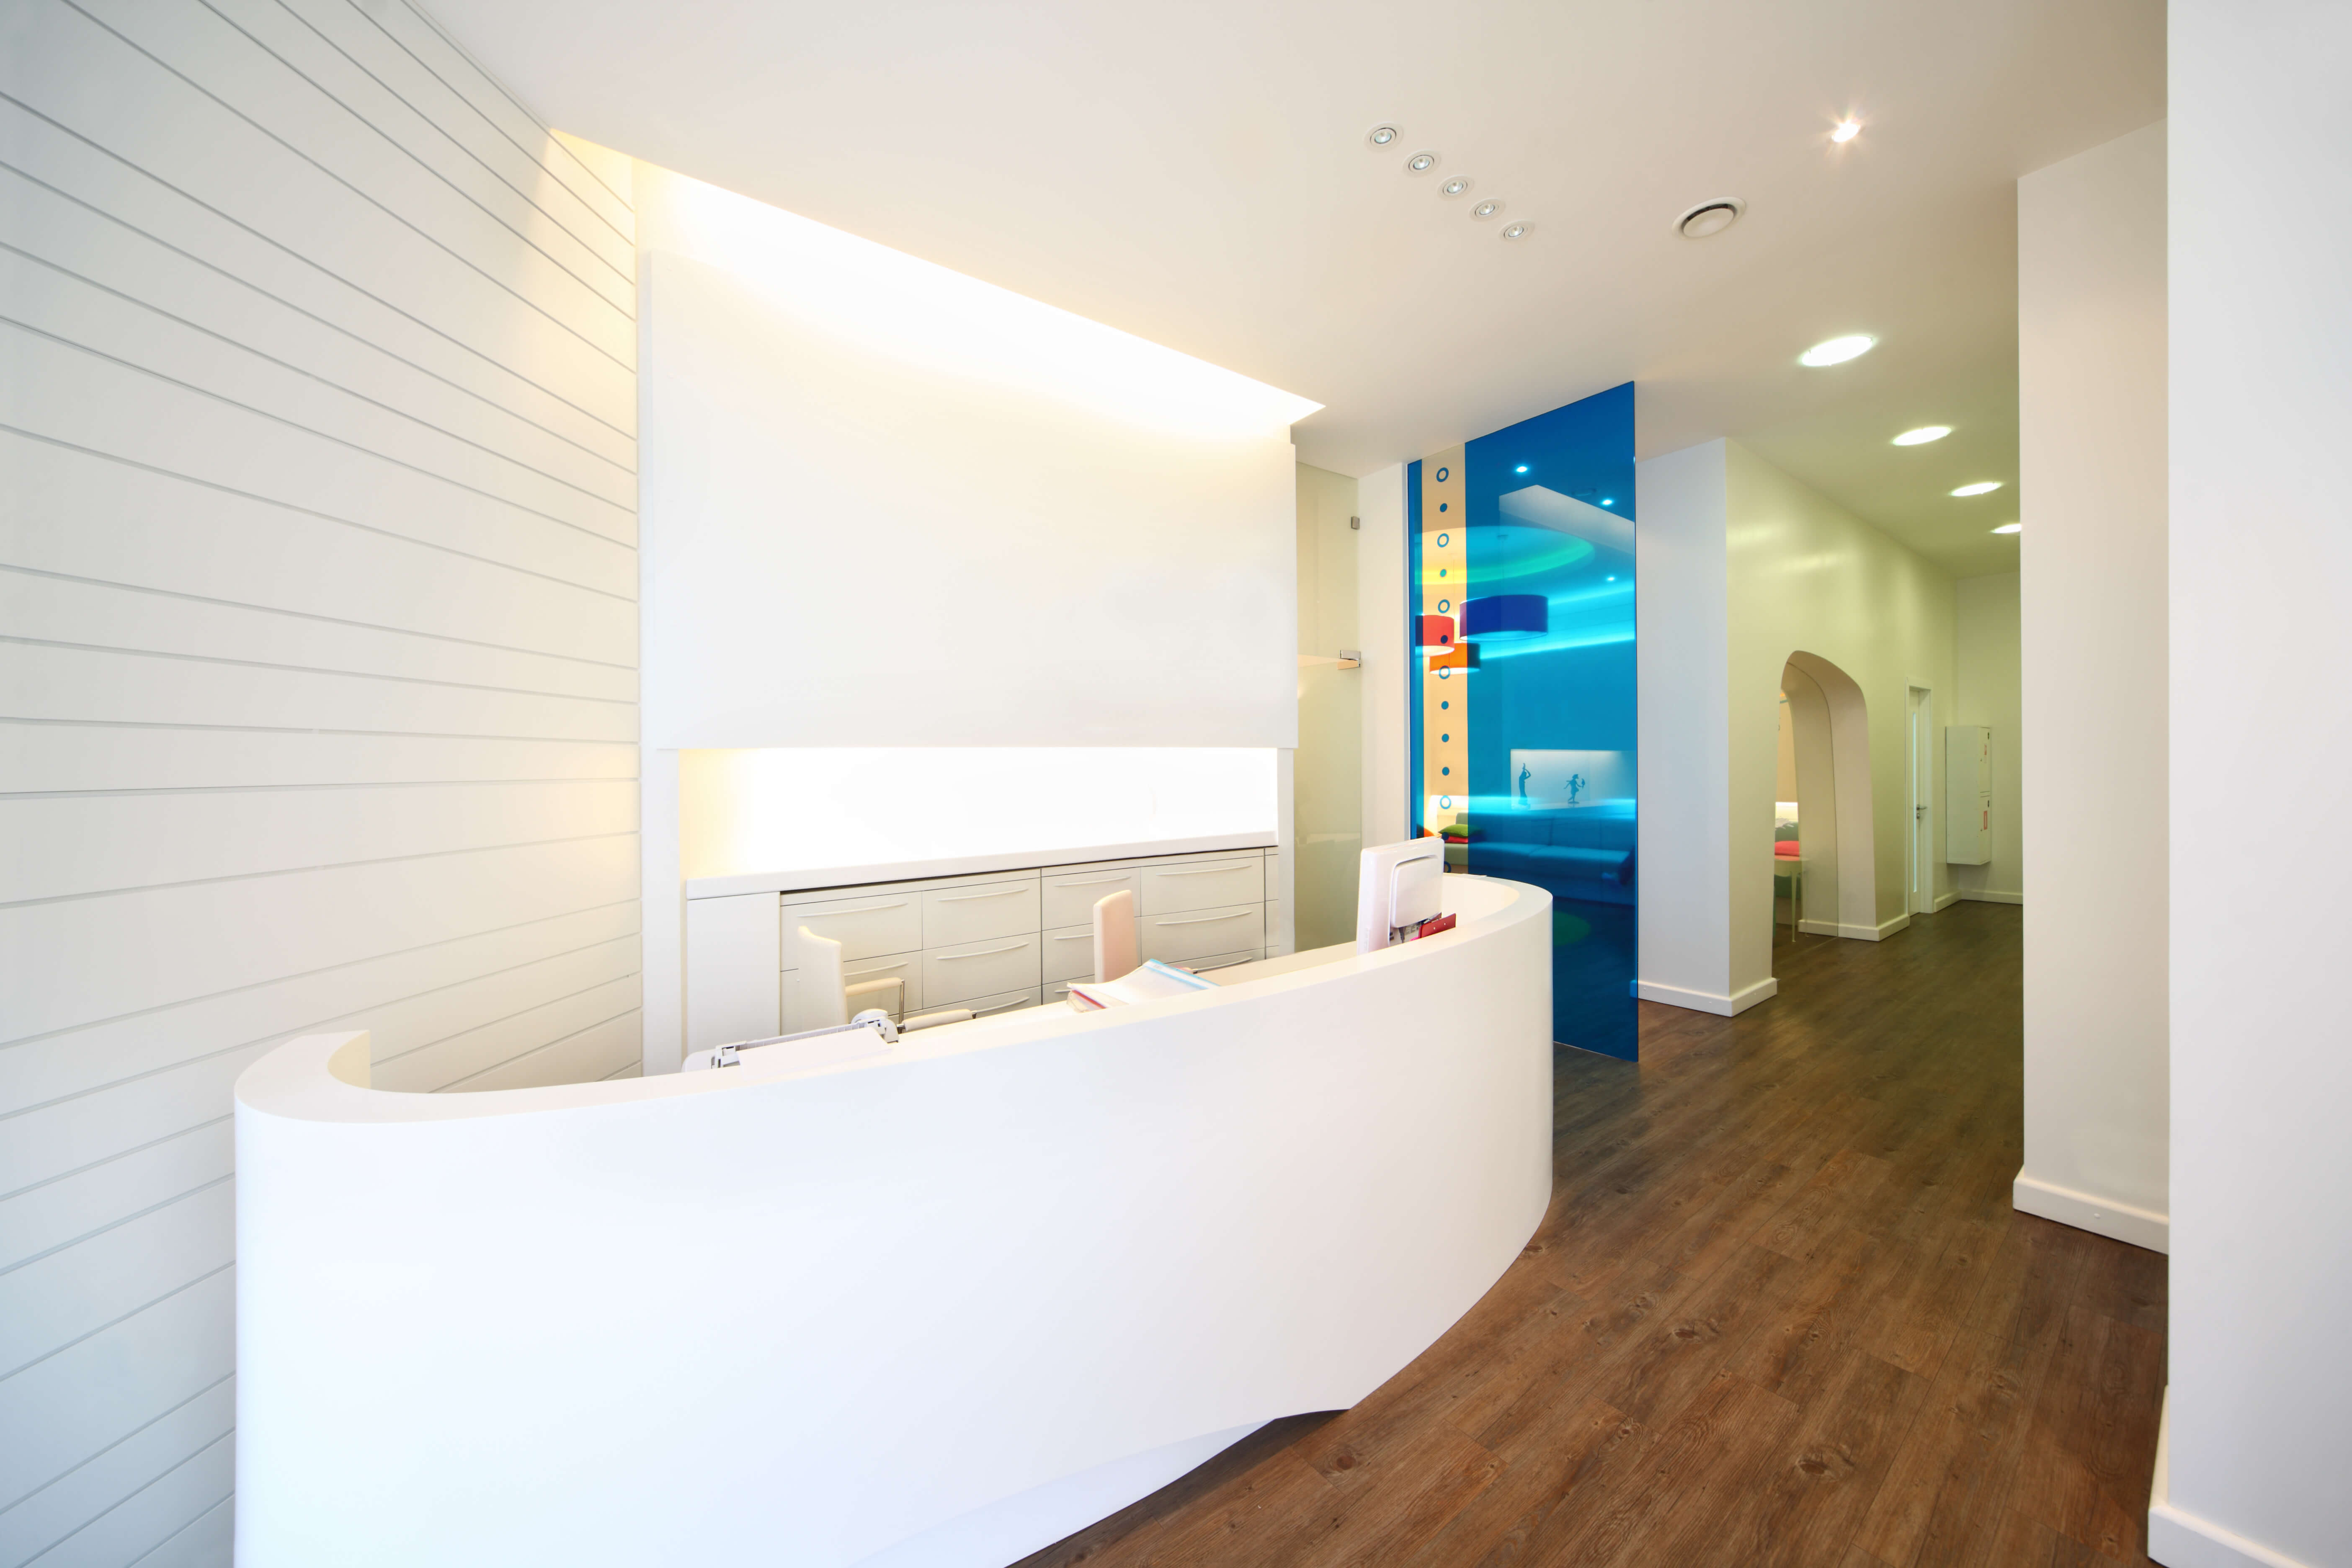 Lit reception area in dental clinic medical centre development